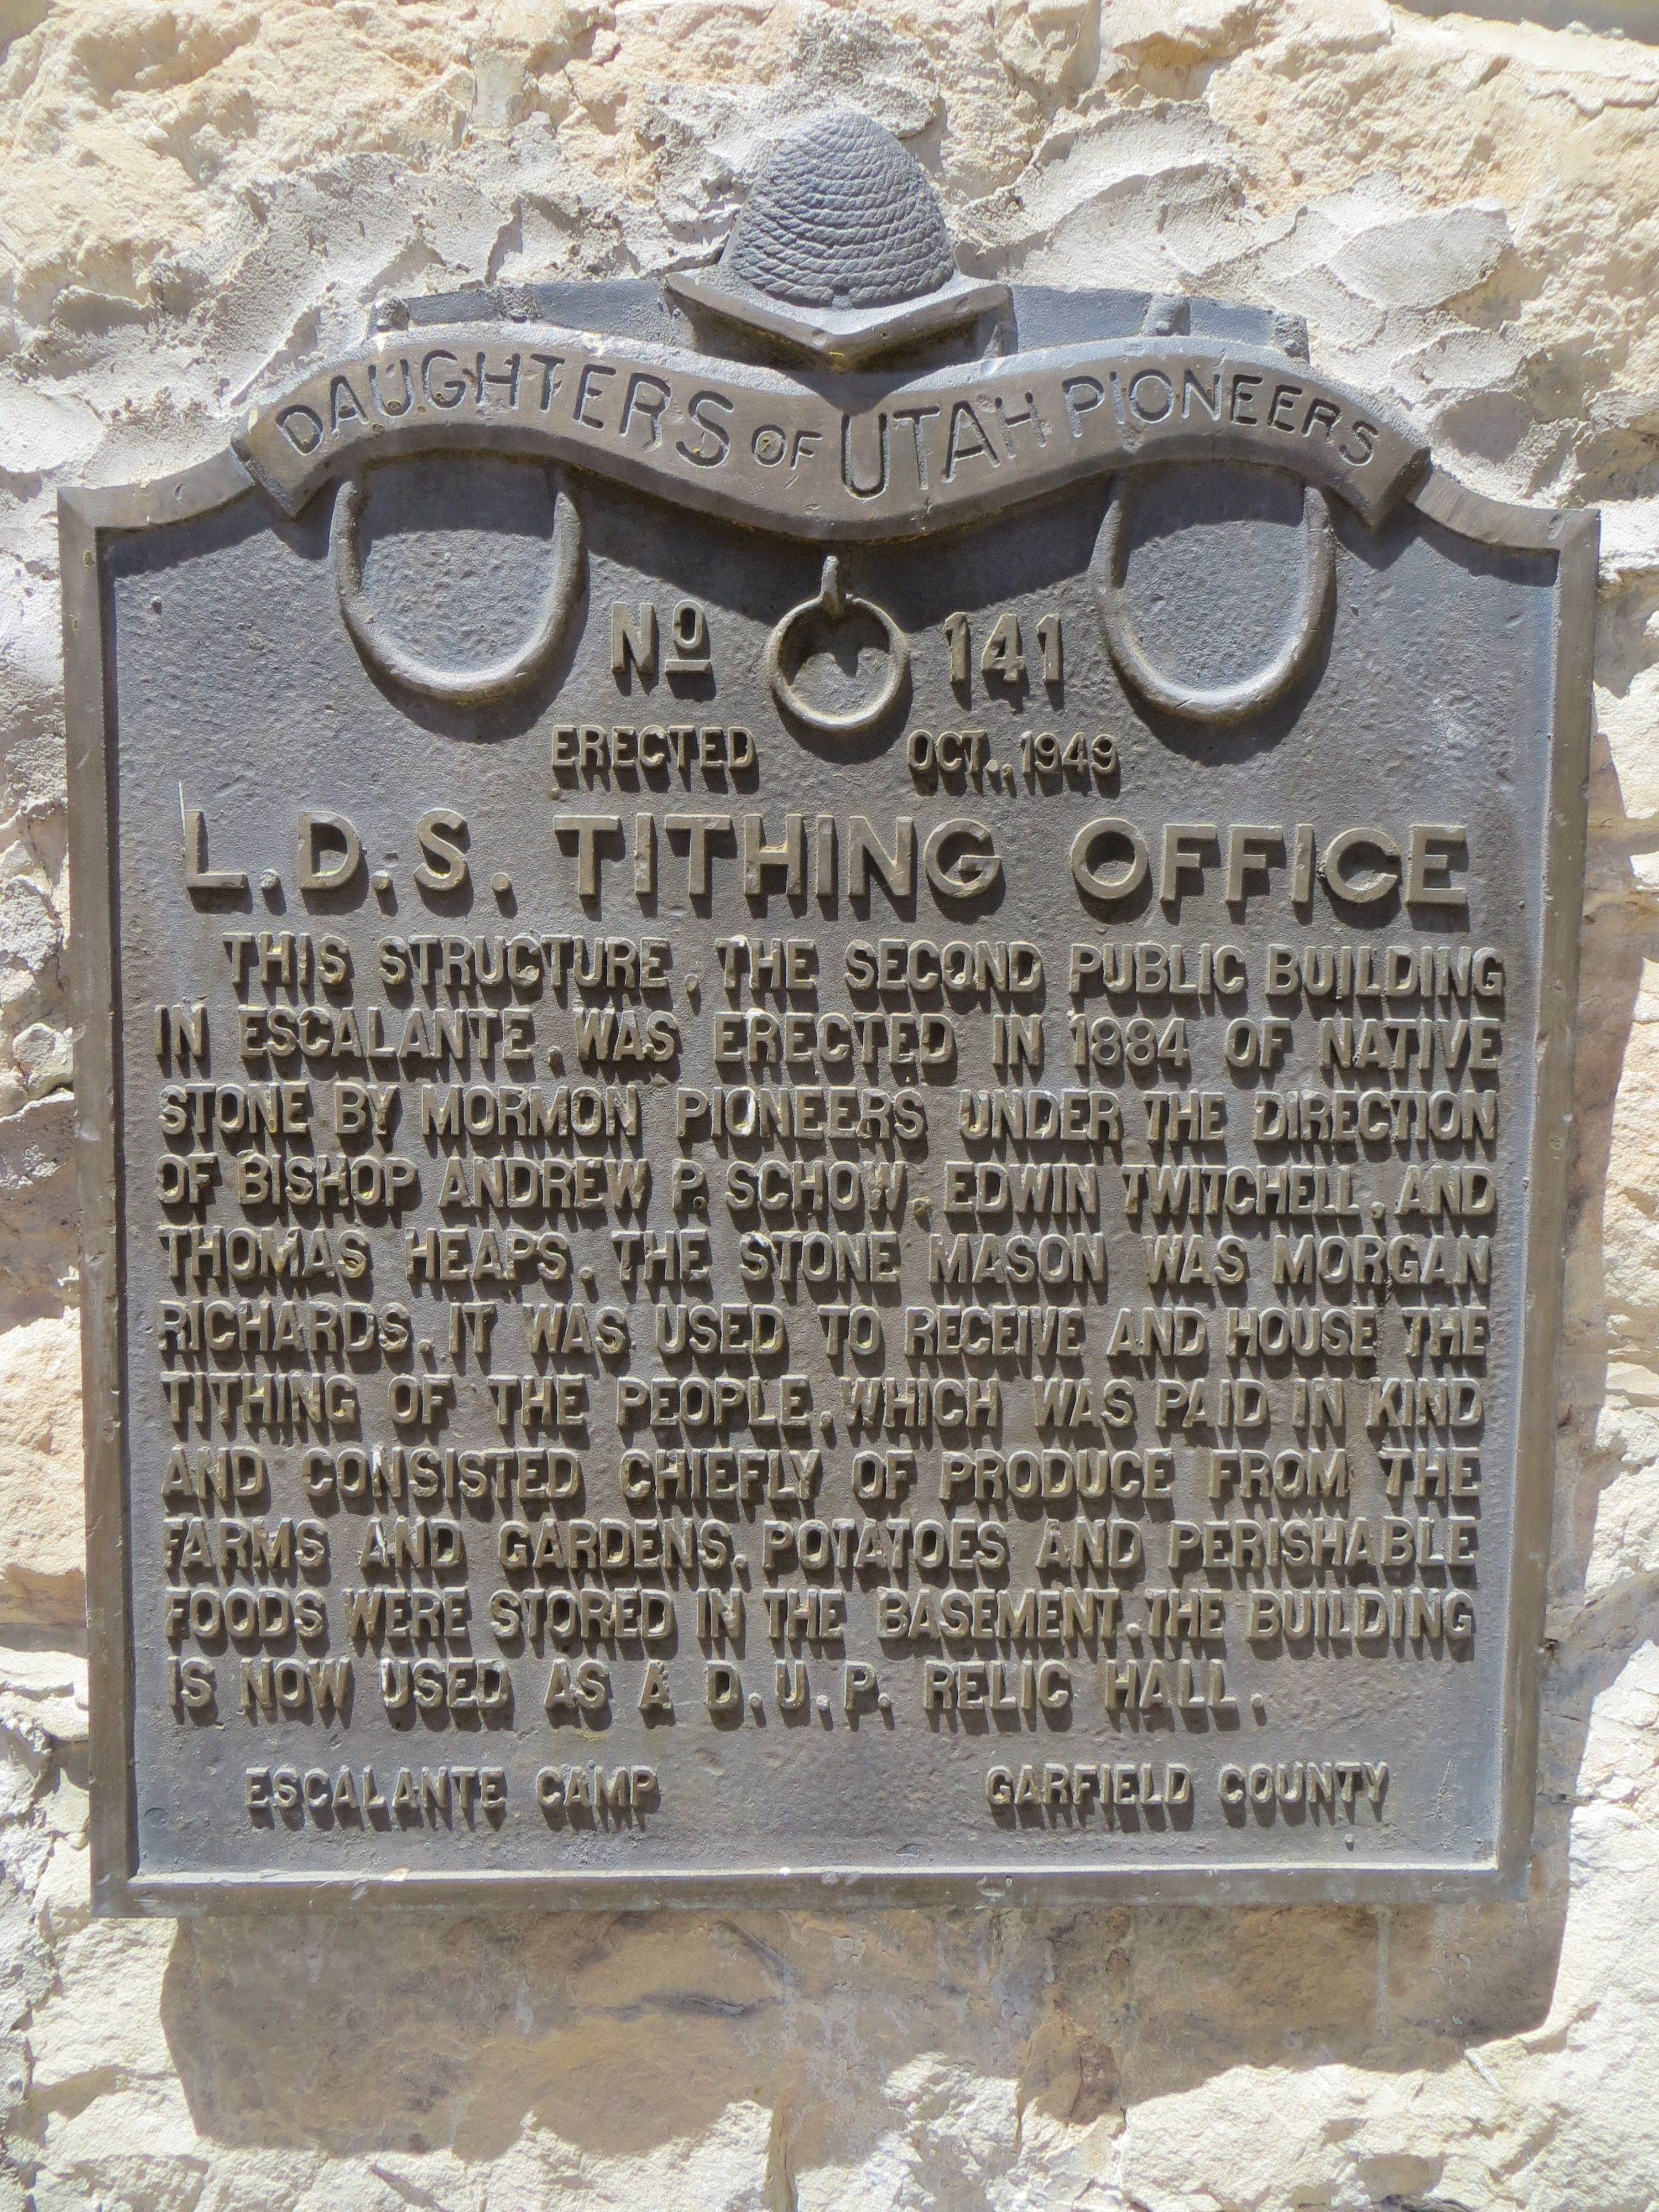 L.D.S. Tithing Office Marker